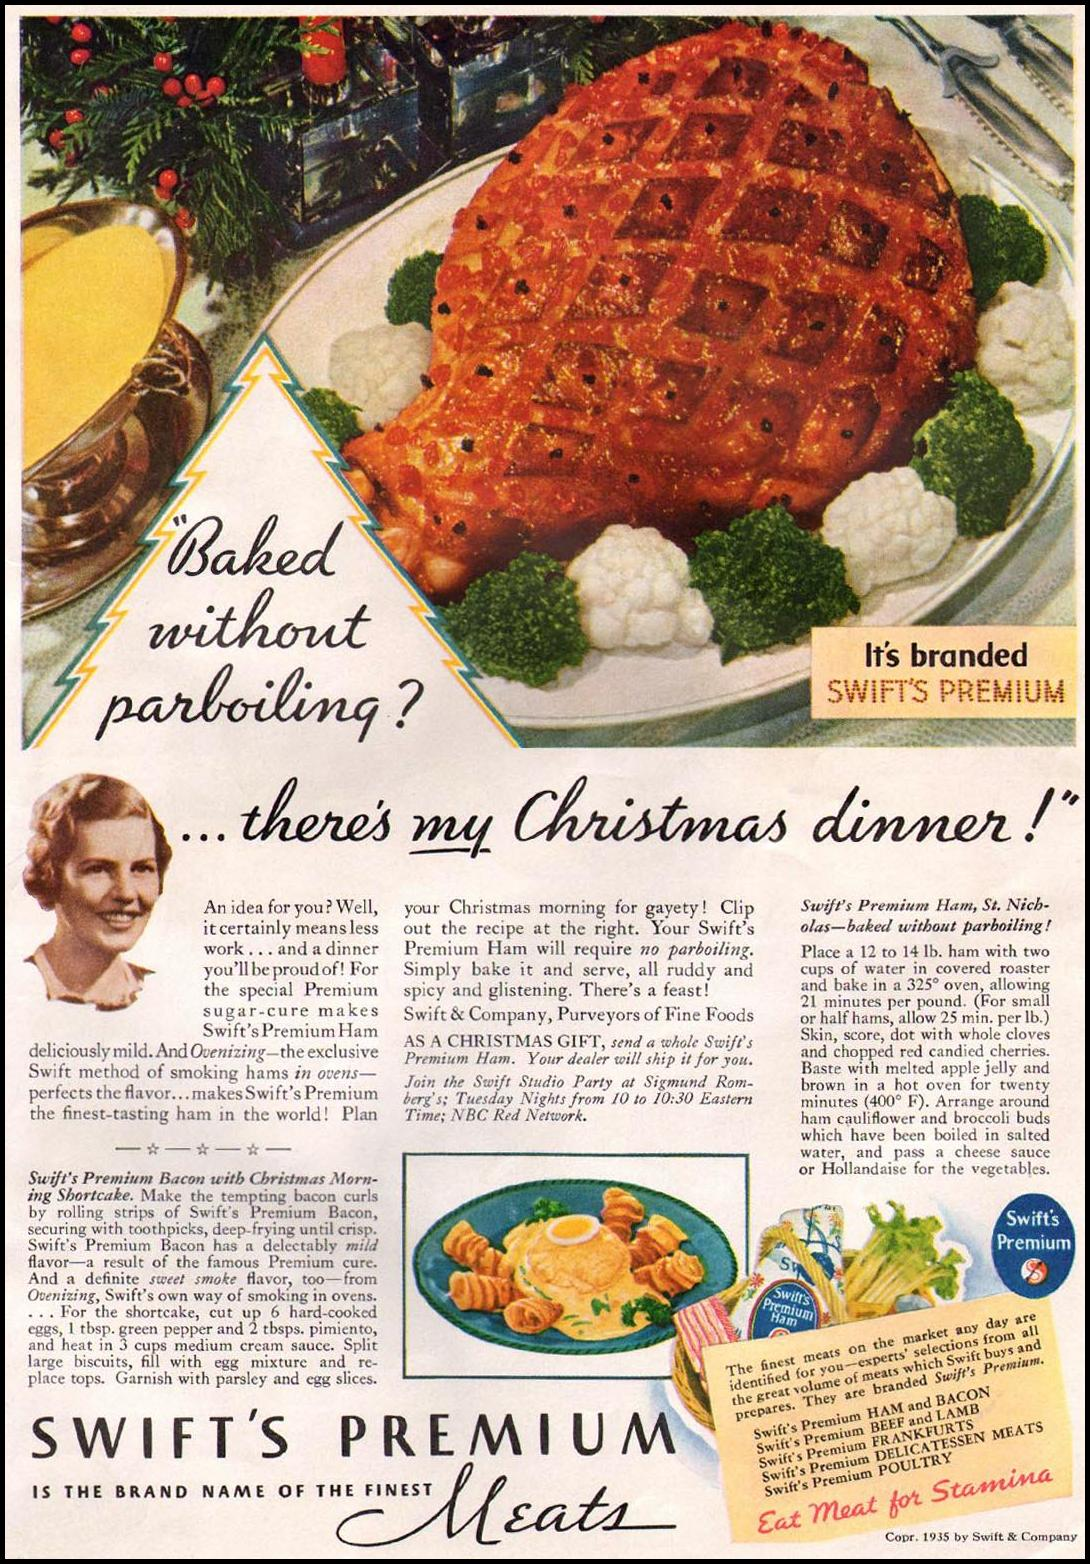 SWIFT'S PREMIUM MEATS GOOD HOUSEKEEPING 12/01/1935